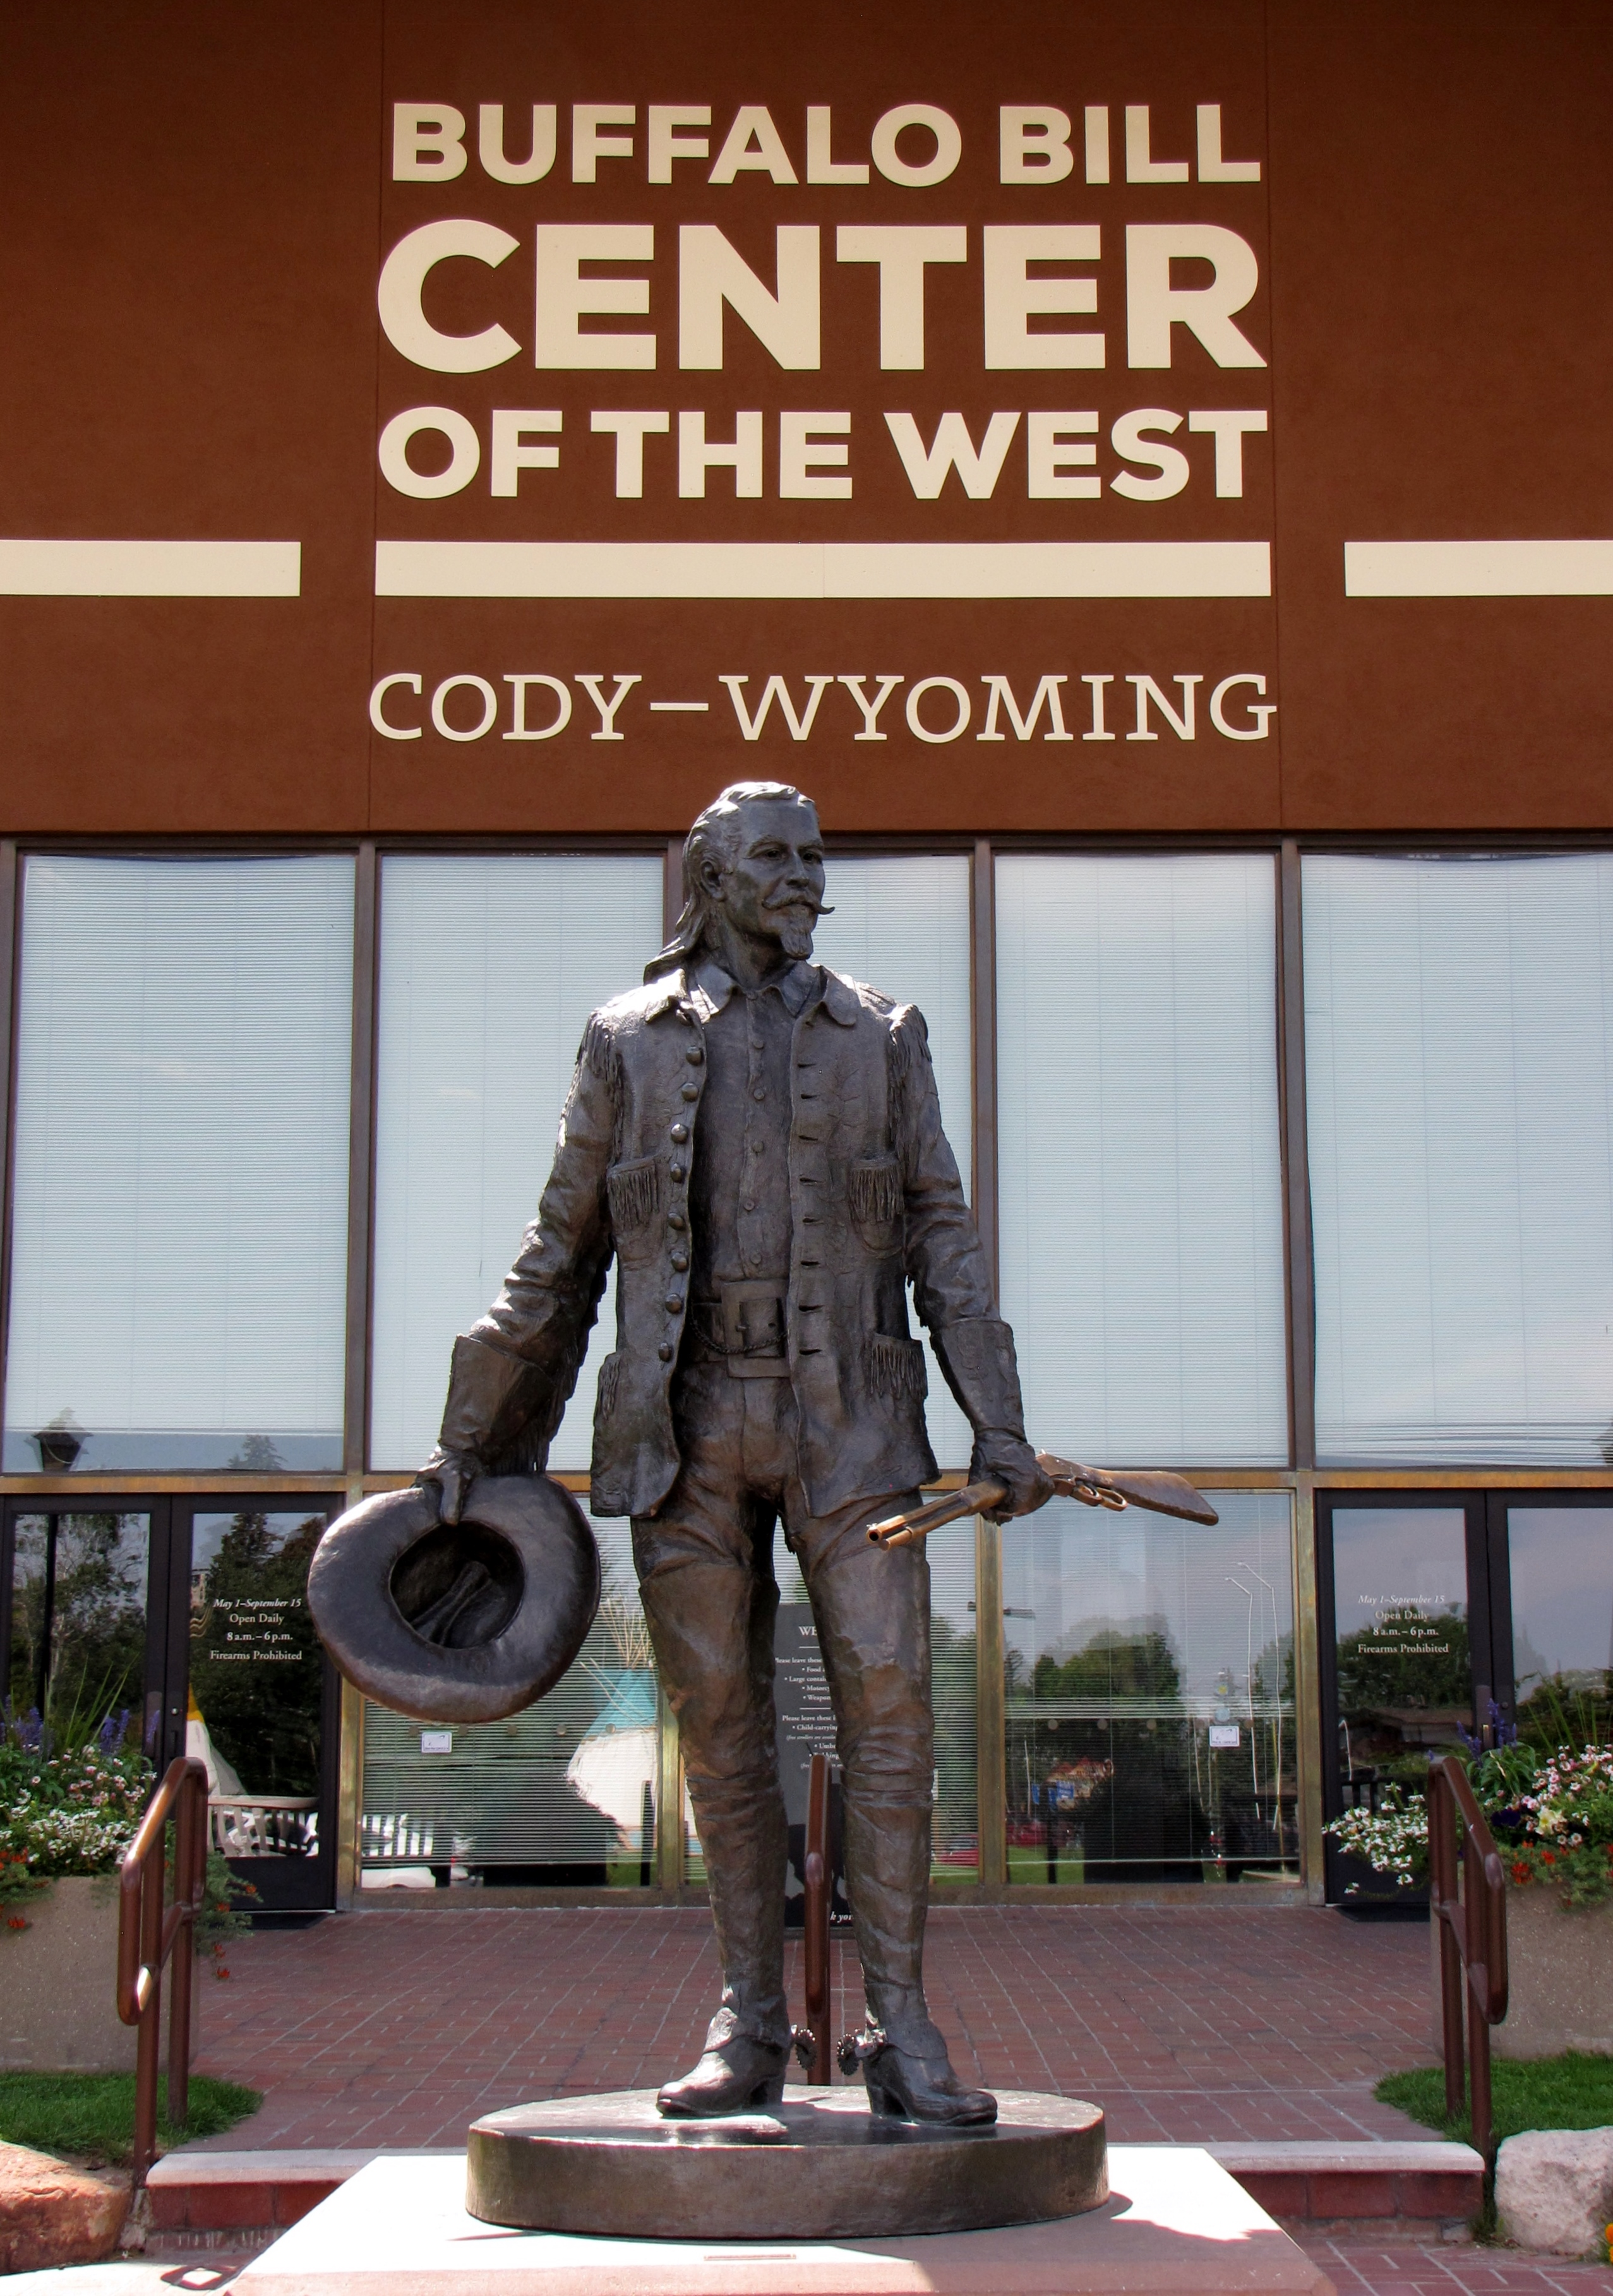 Bronze statue of man holding rifle and his cowboy hat.